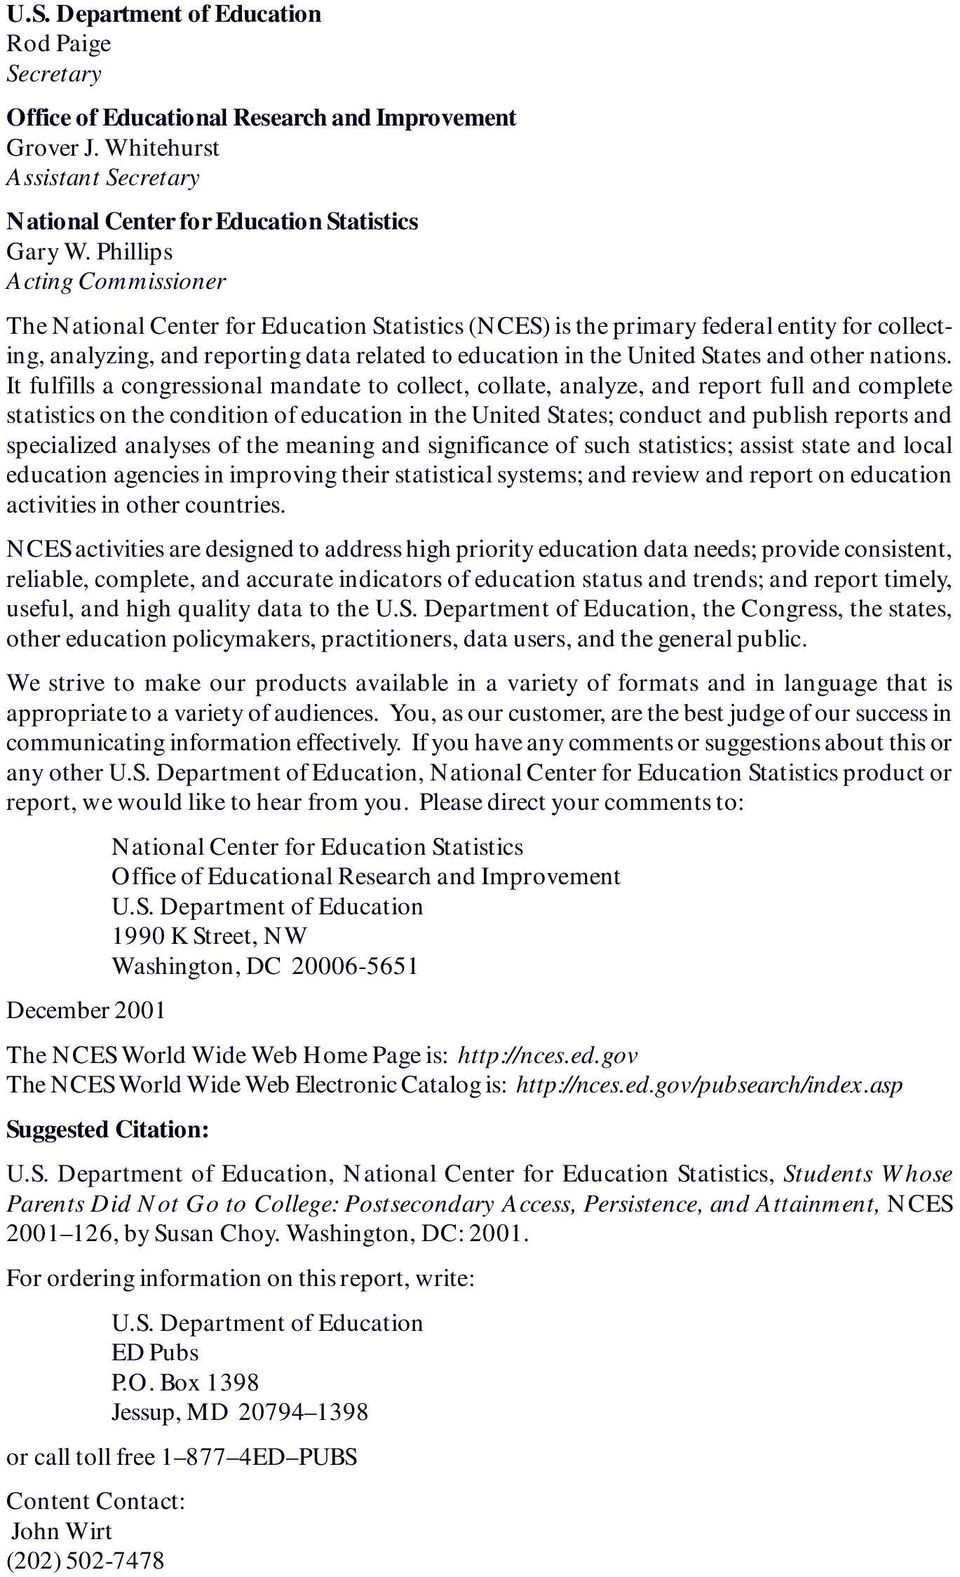 NATIONAL CENTER FOR EDUCATION STATISTICS U S  Department of